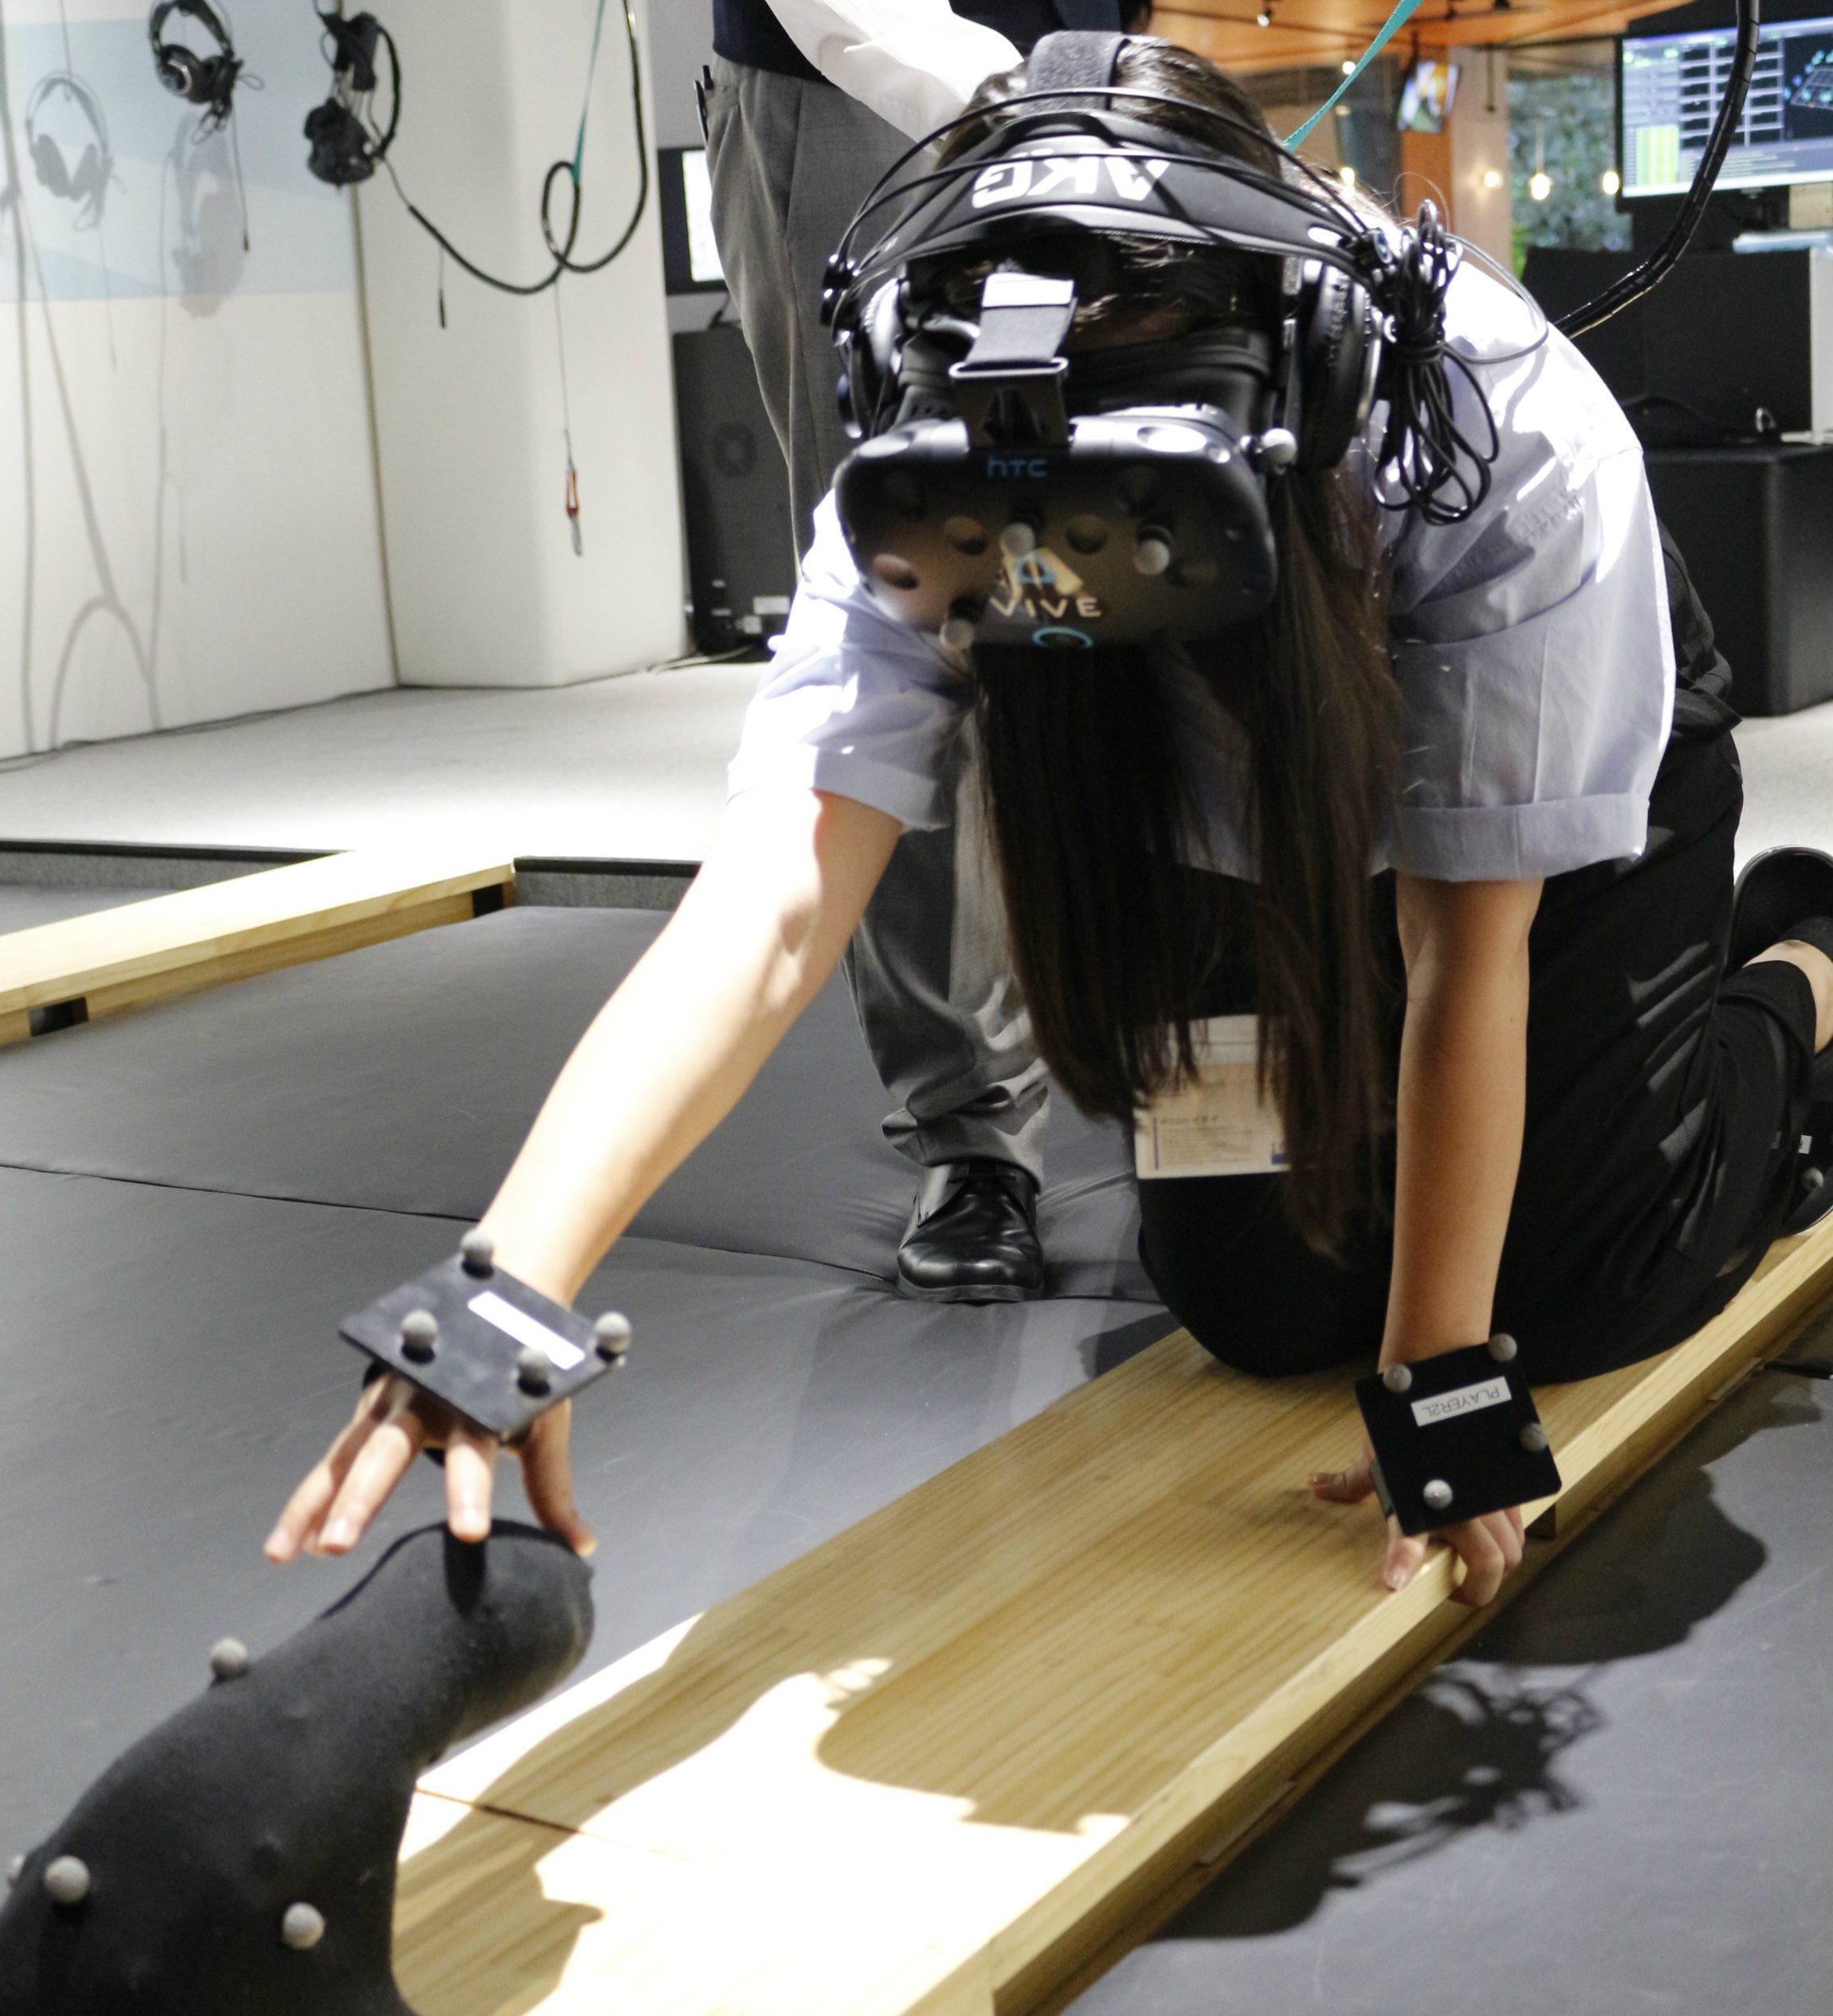 vr-zone-experience2